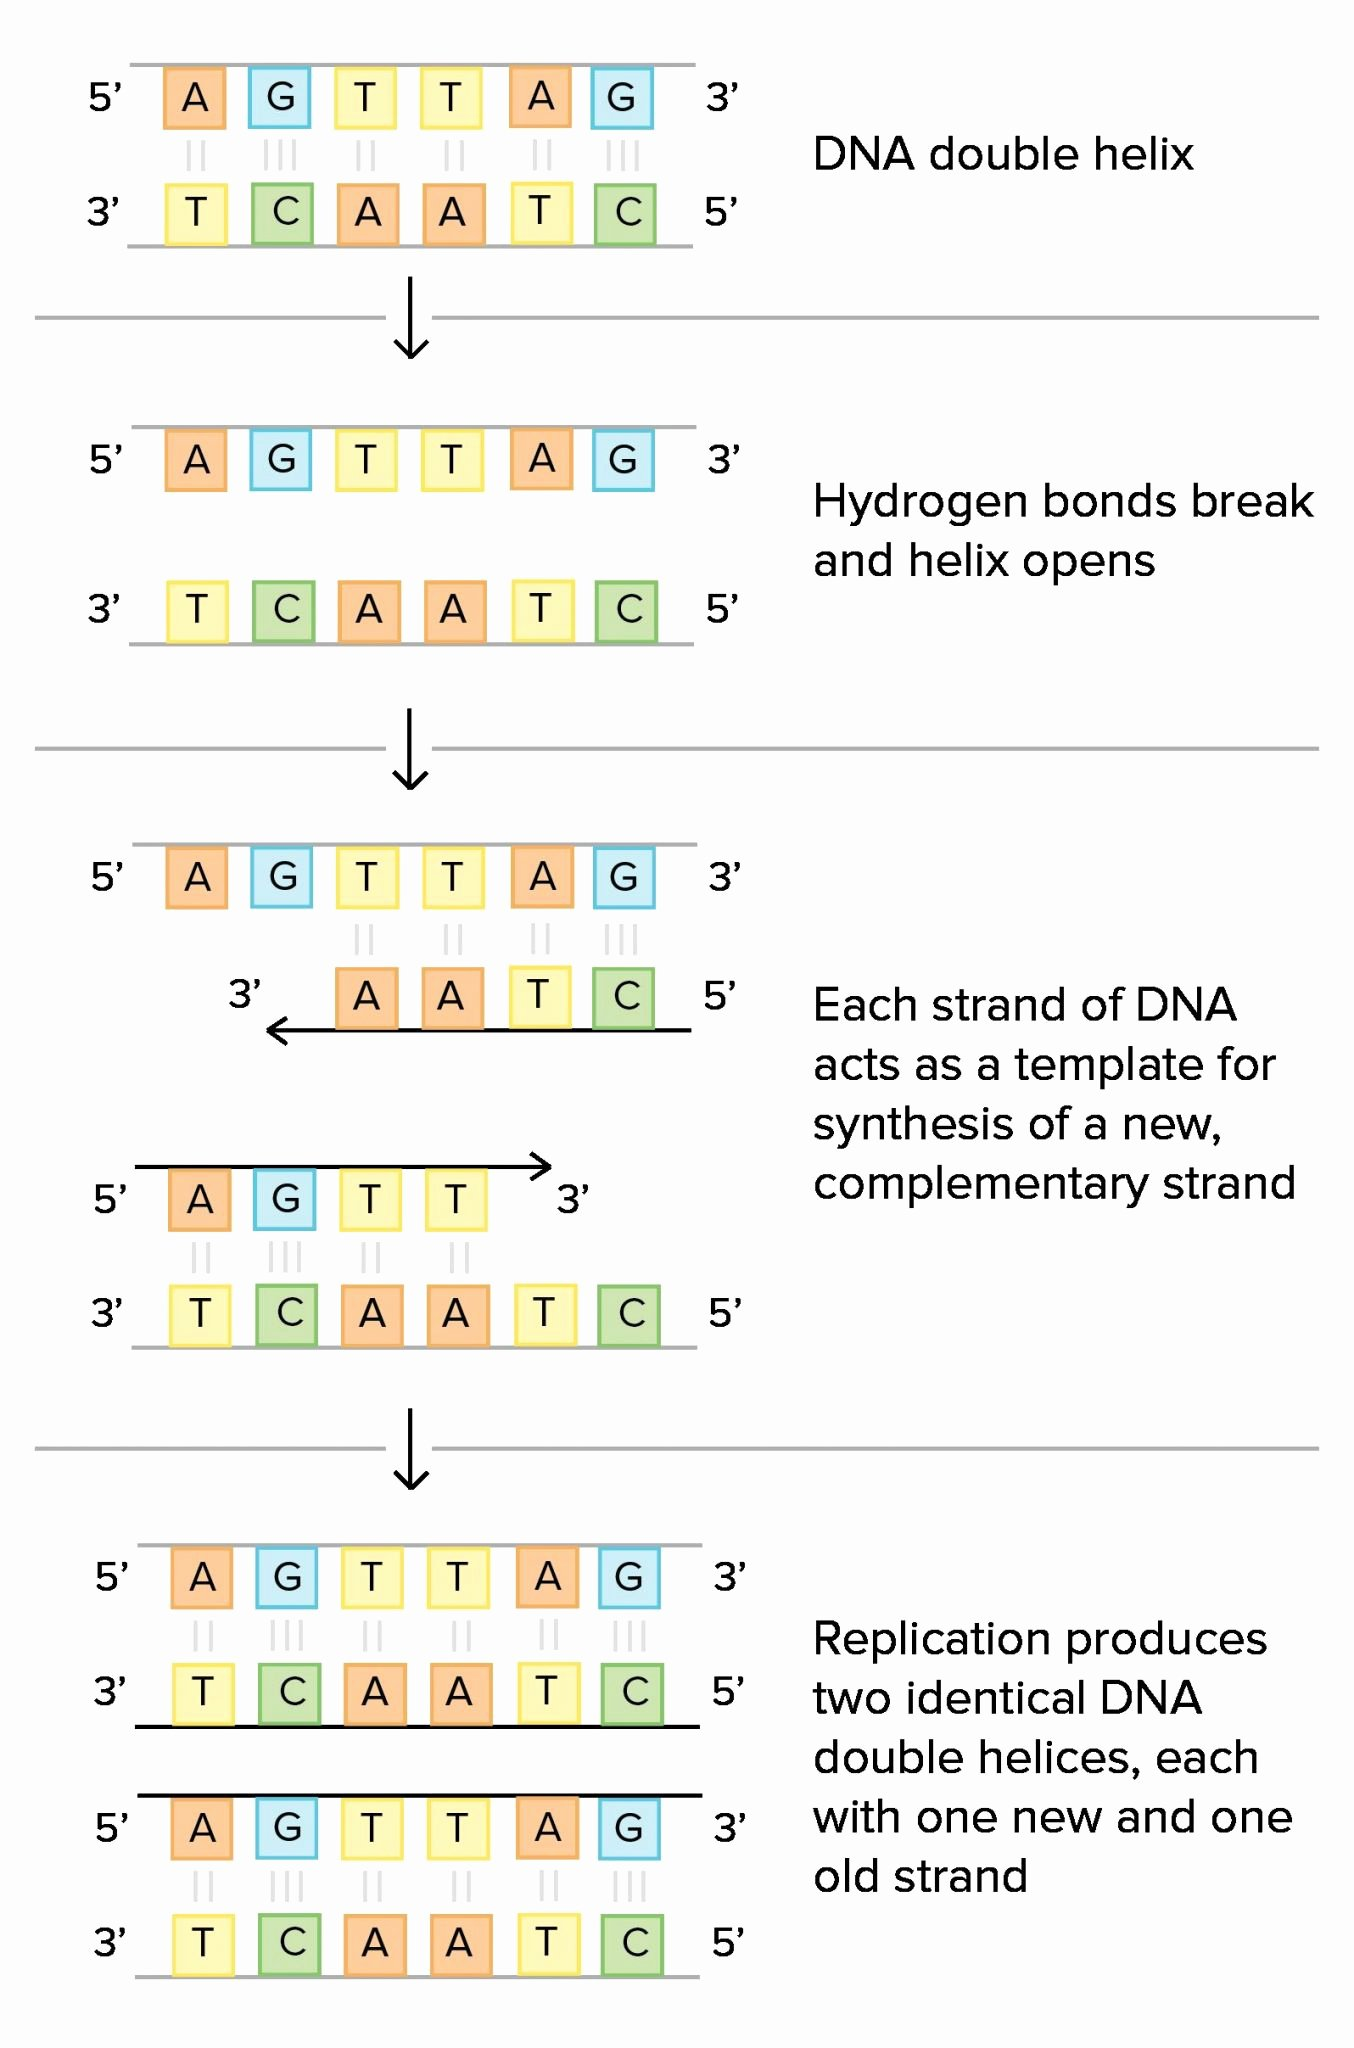 Dna the Double Helix Worksheet Fresh Dna the Double Helix Coloring Worksheet Answer Key